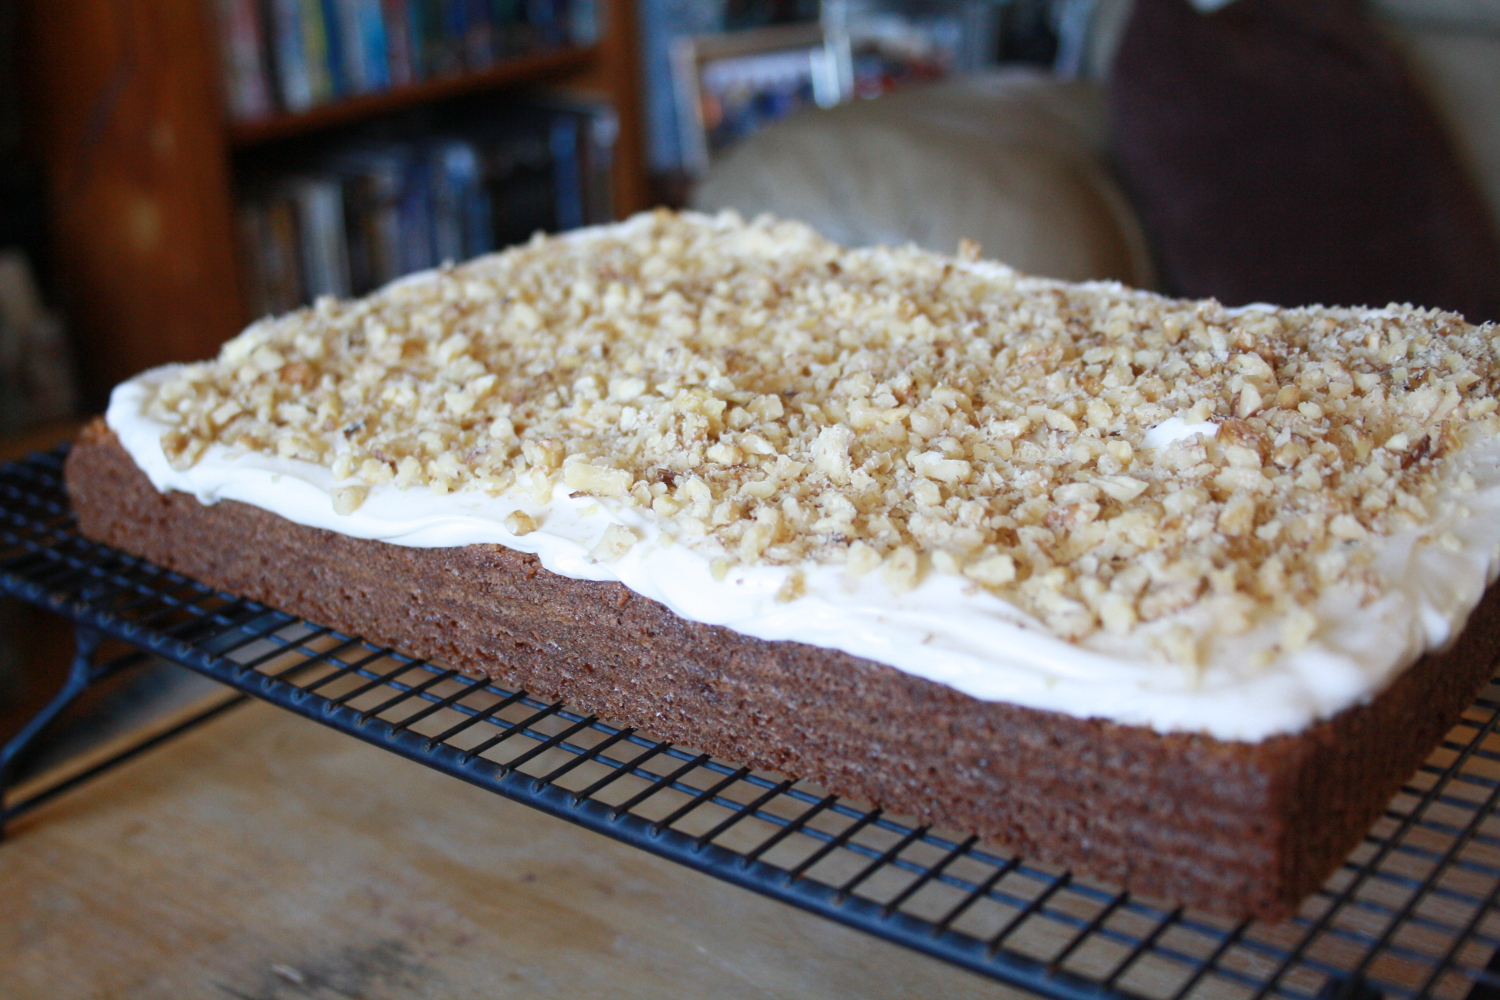 Carrot Cake Recipe No Icing: Carrot Cake With Cream Cheese Frosting Recipes